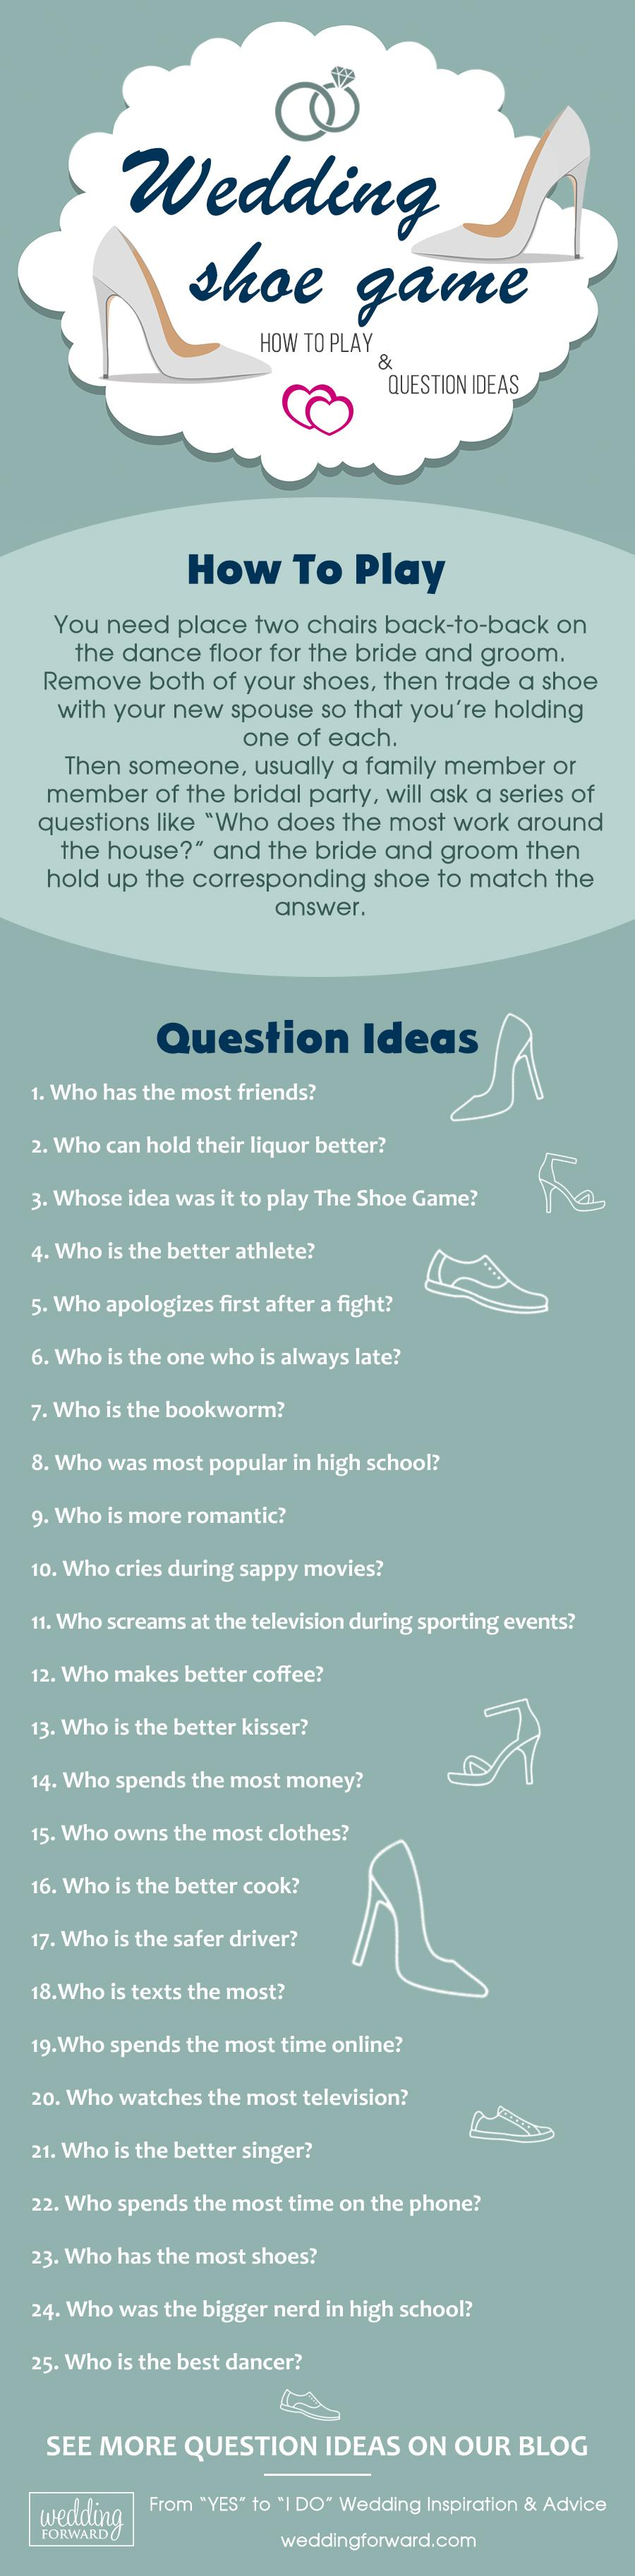 wedding shoe game how to play question ideas